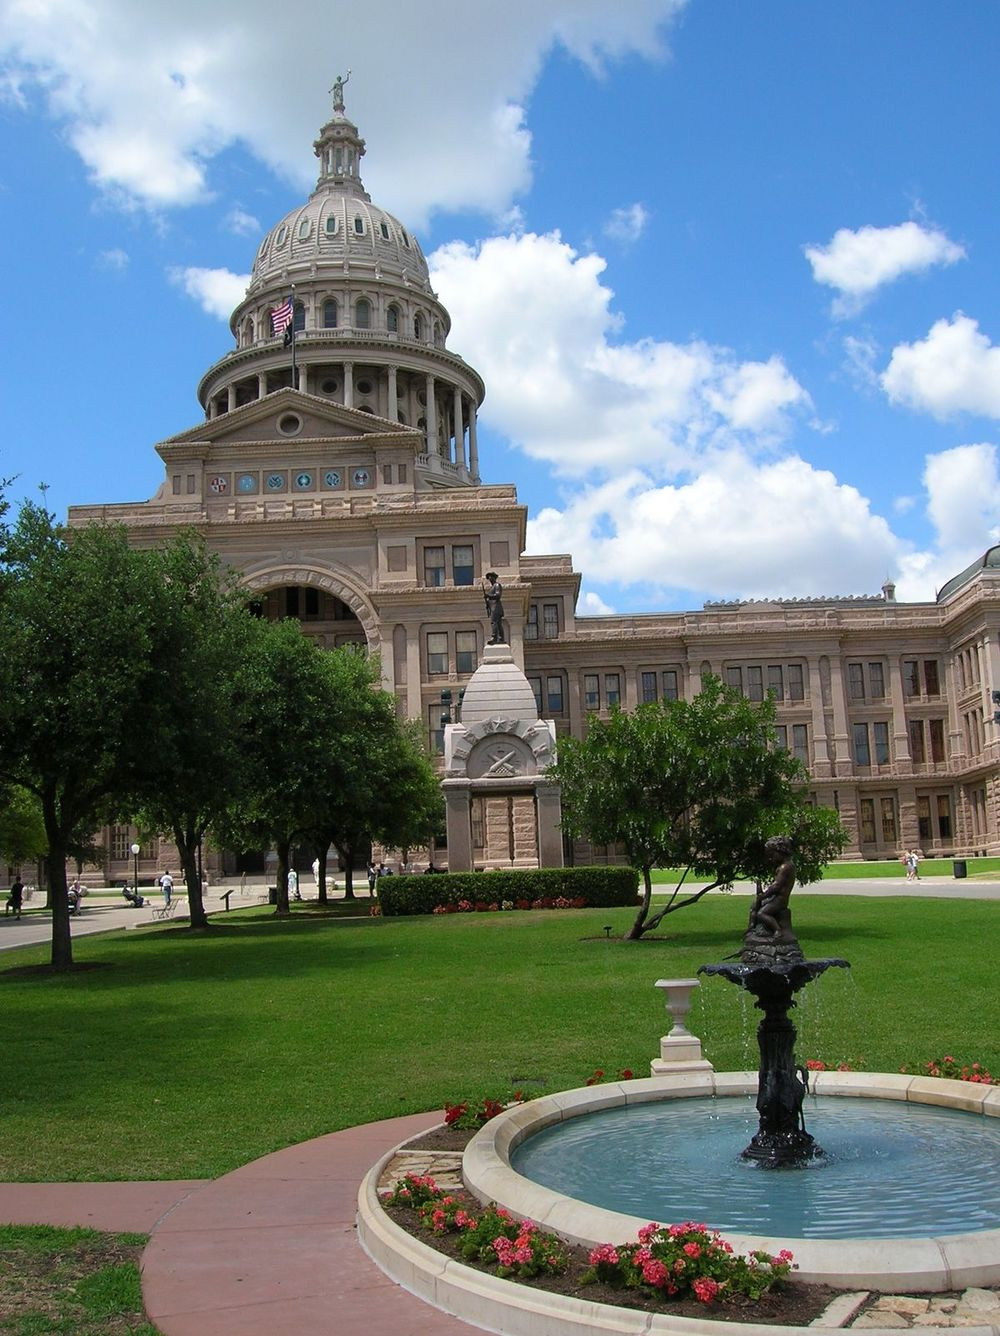 The Capital Building in Austin, Texas. Courtesy of freeimages.com.